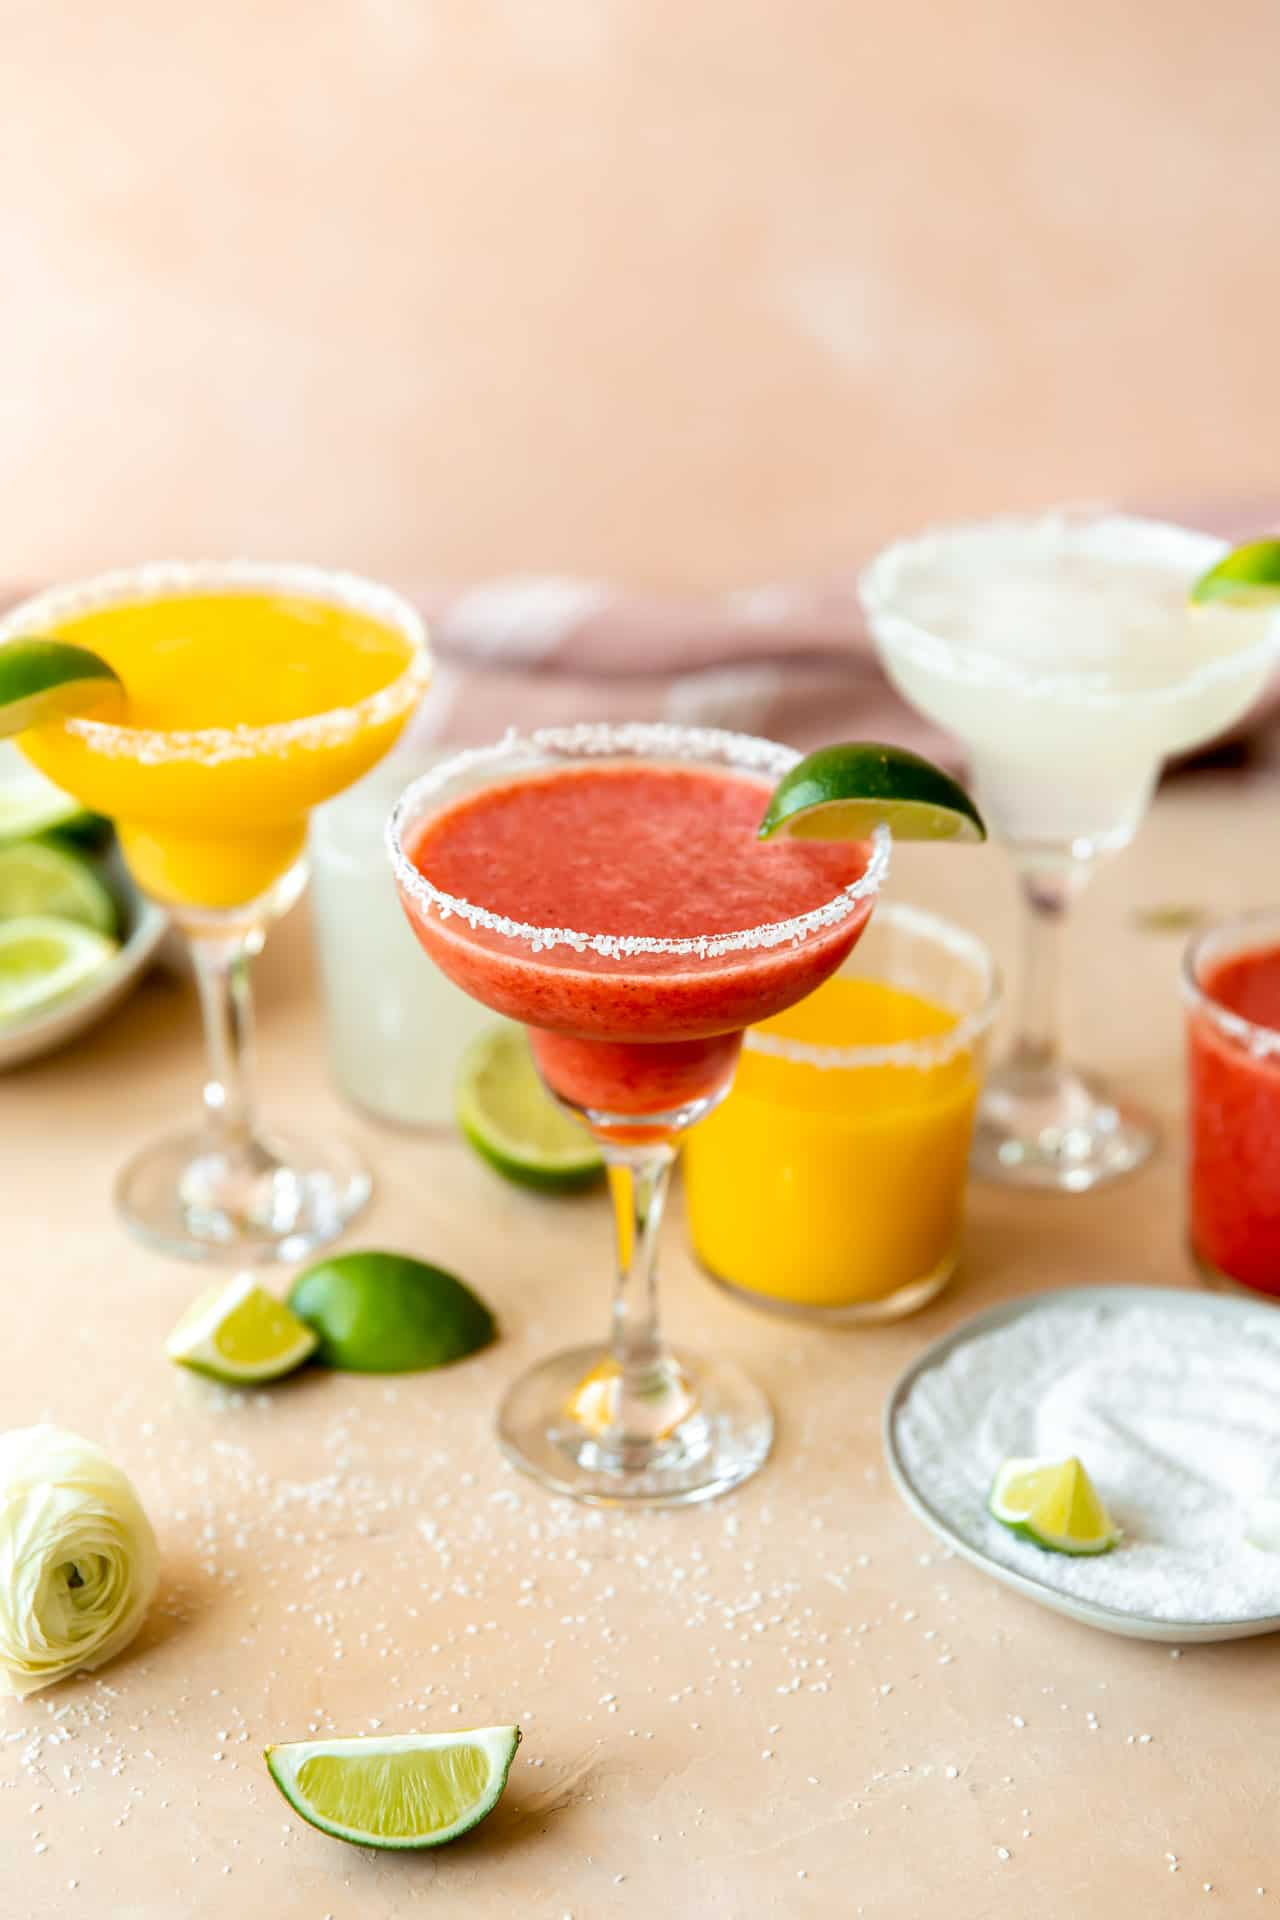 Frozen fruit margaritas lined up with mango, strawberry, and lime, with wedges of limes surrounding.